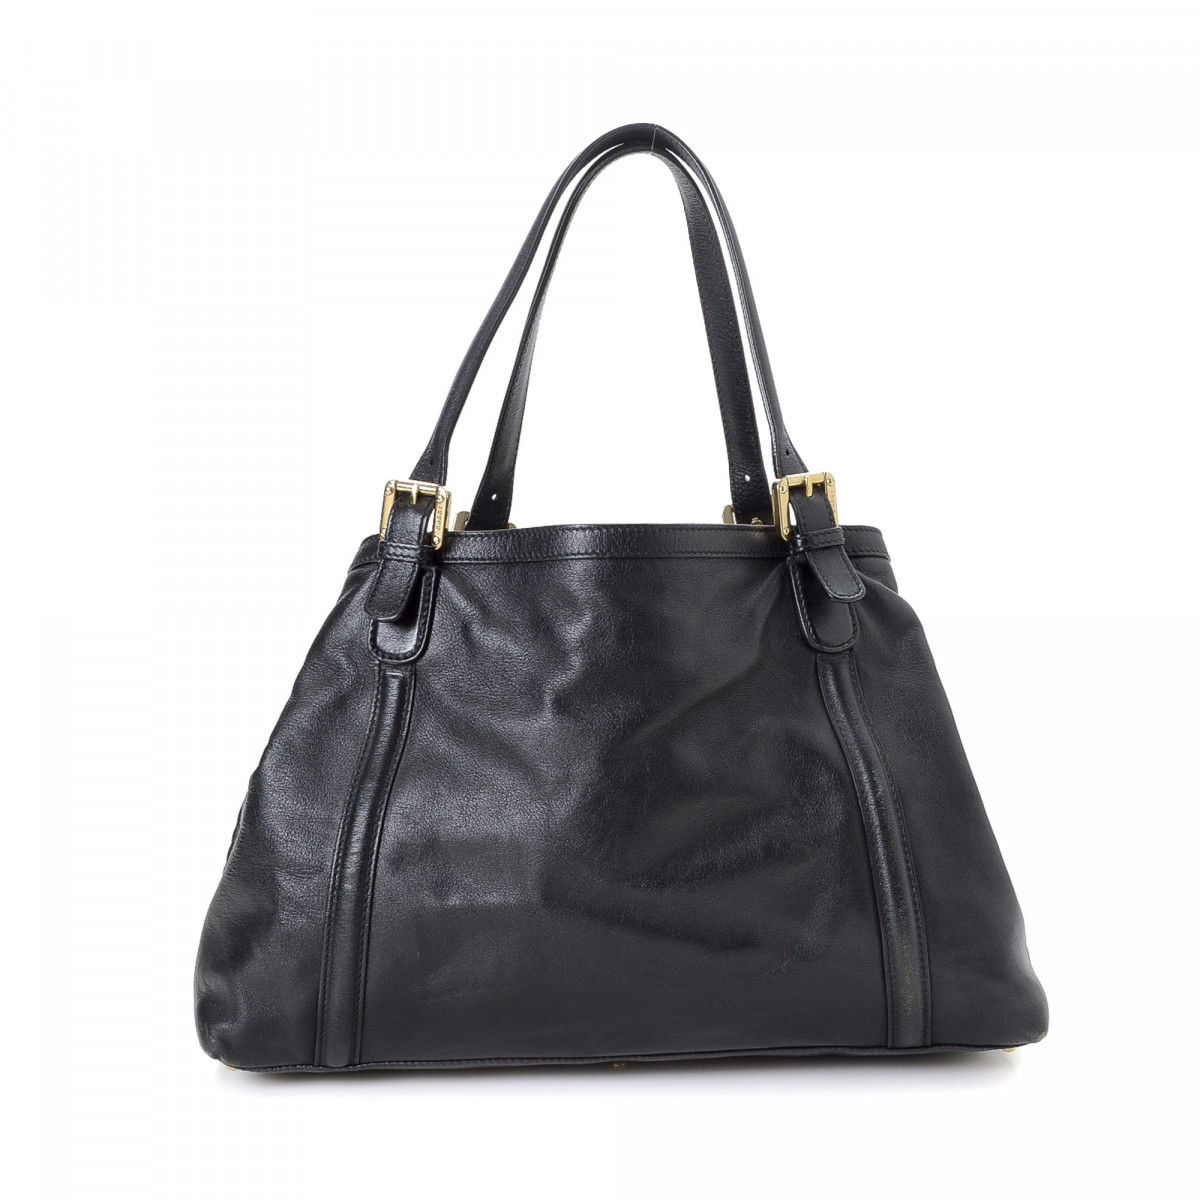 a71ff95849c Gucci Britt Tote. Free Shipping. The authenticity of this vintage Gucci  Britt tote is guaranteed by LXRandCo. This iconic tote bag comes in black  leather.